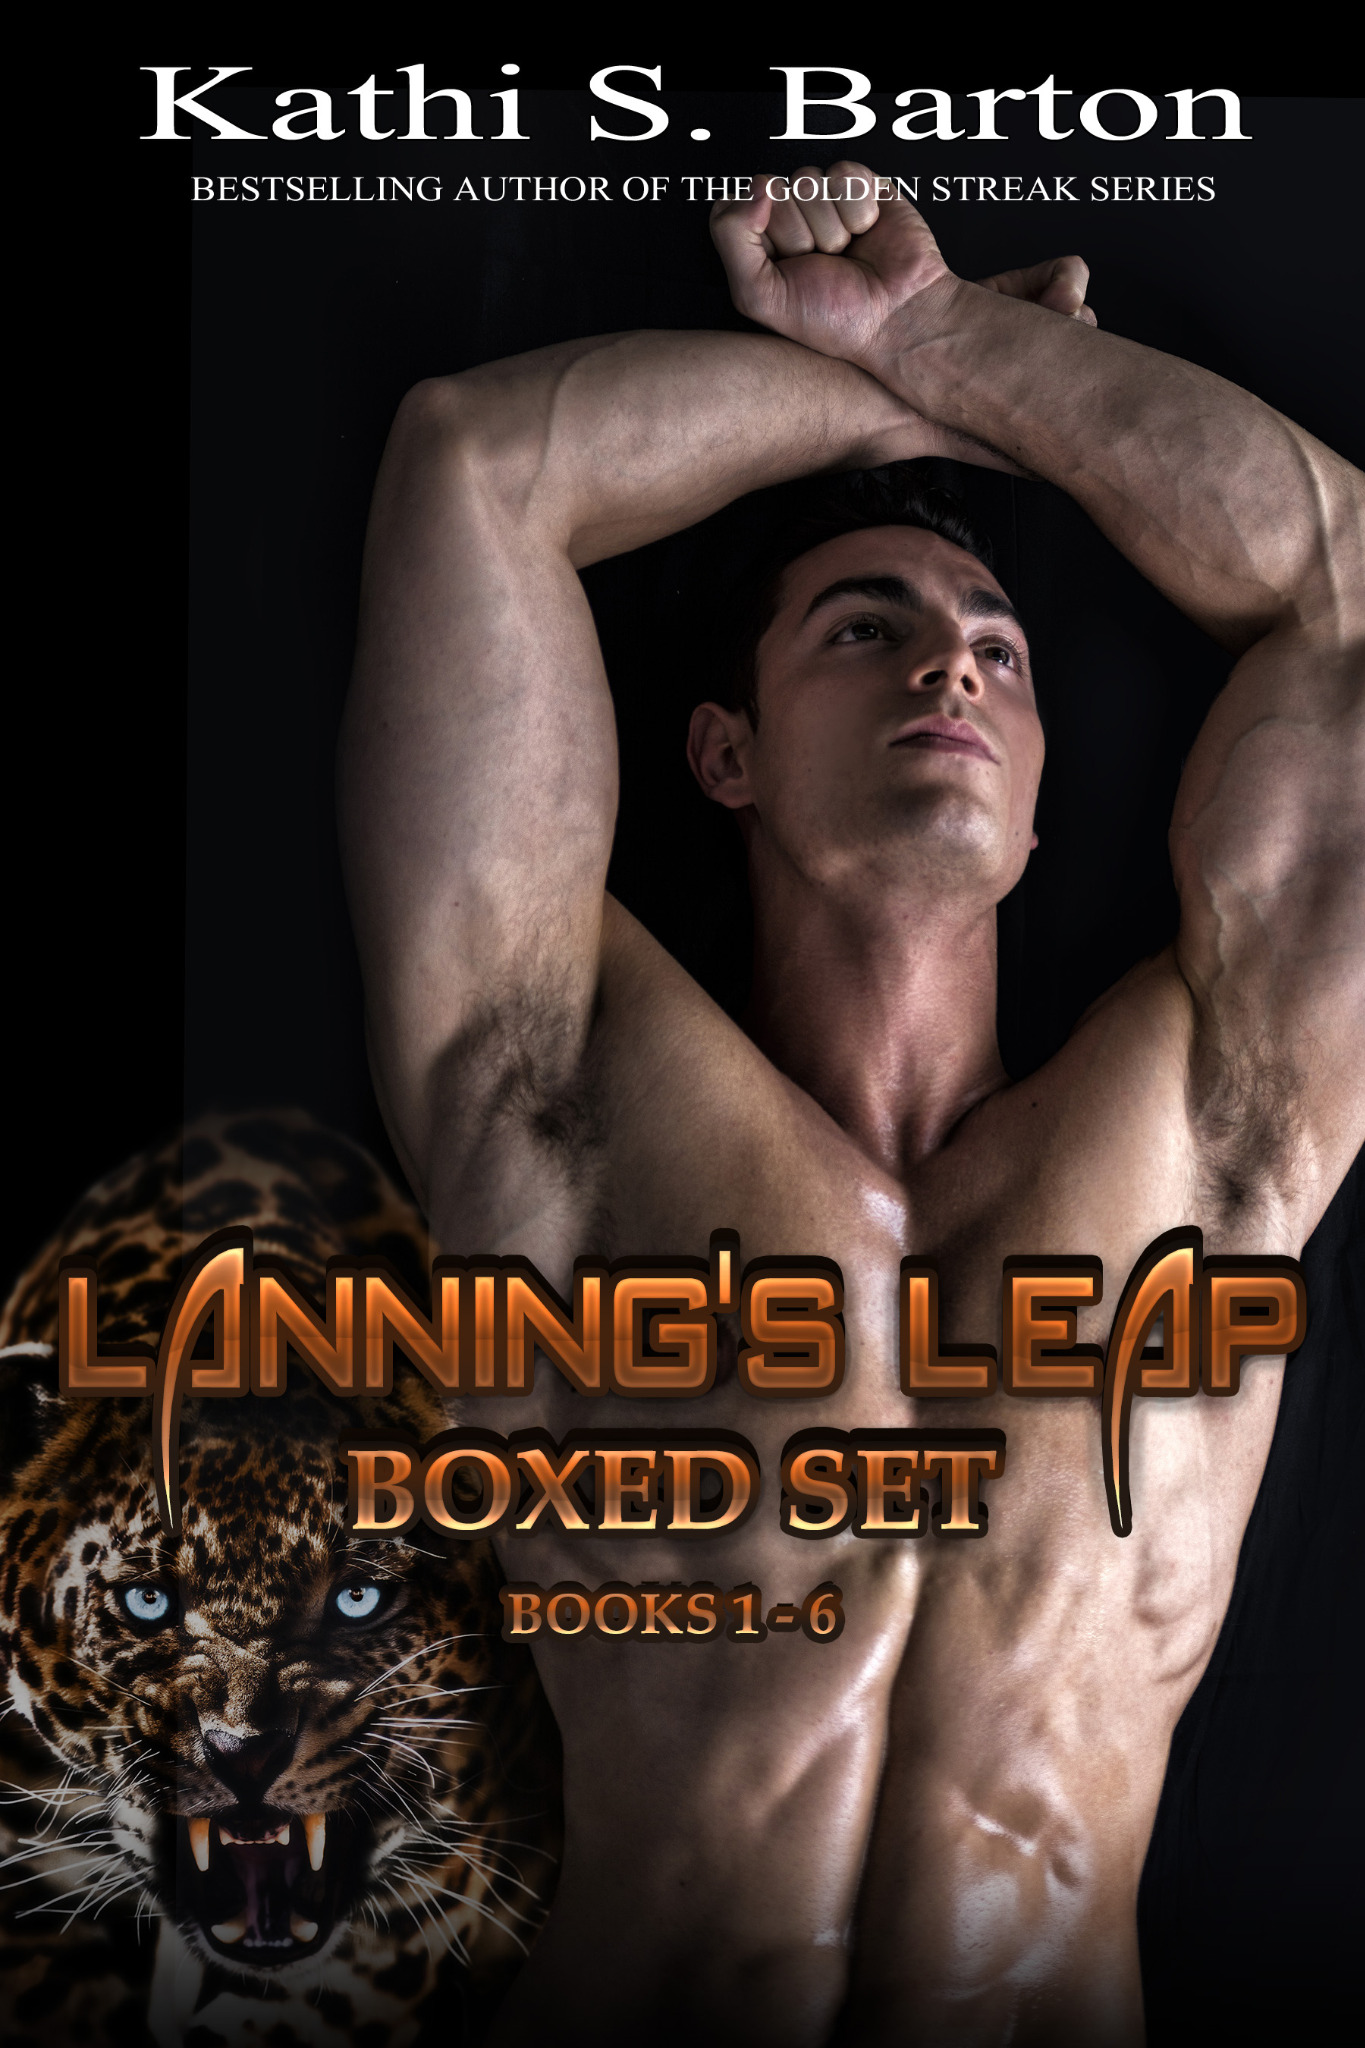 Lanning's Leap Boxed Set Books 1-6